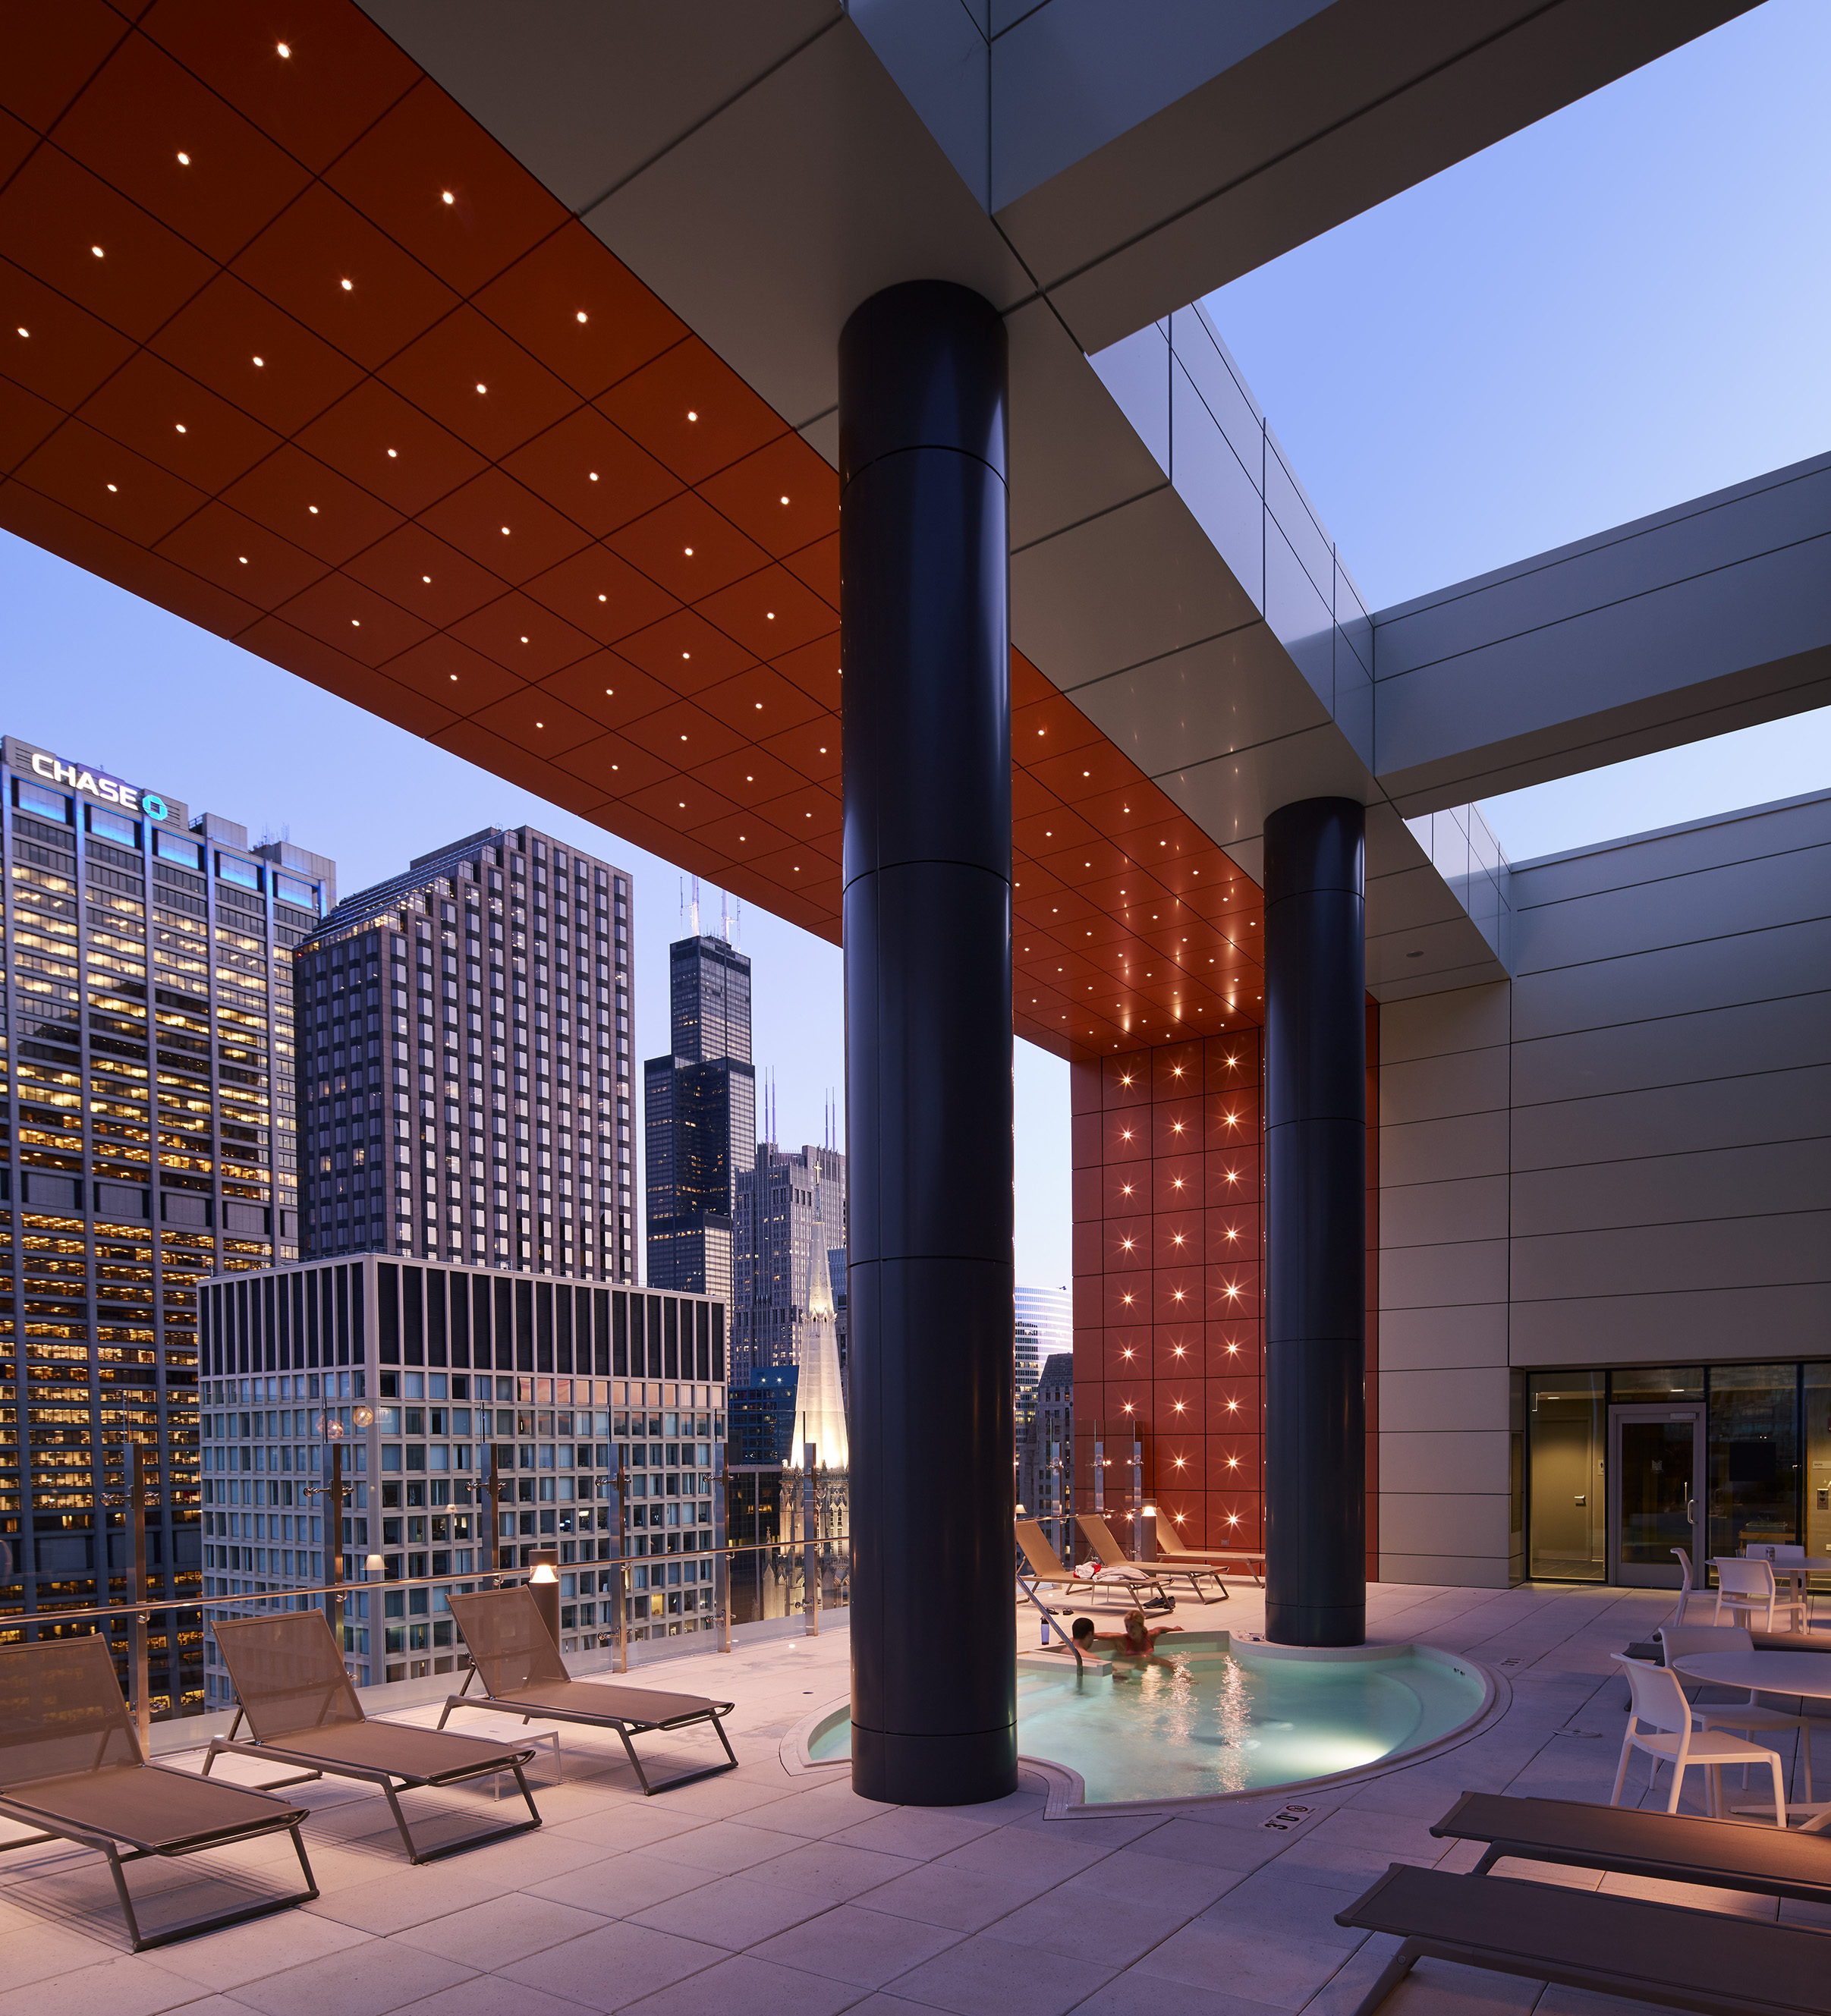 Chicago Apartments: Downtown Chicago Apartments For All Weather Living